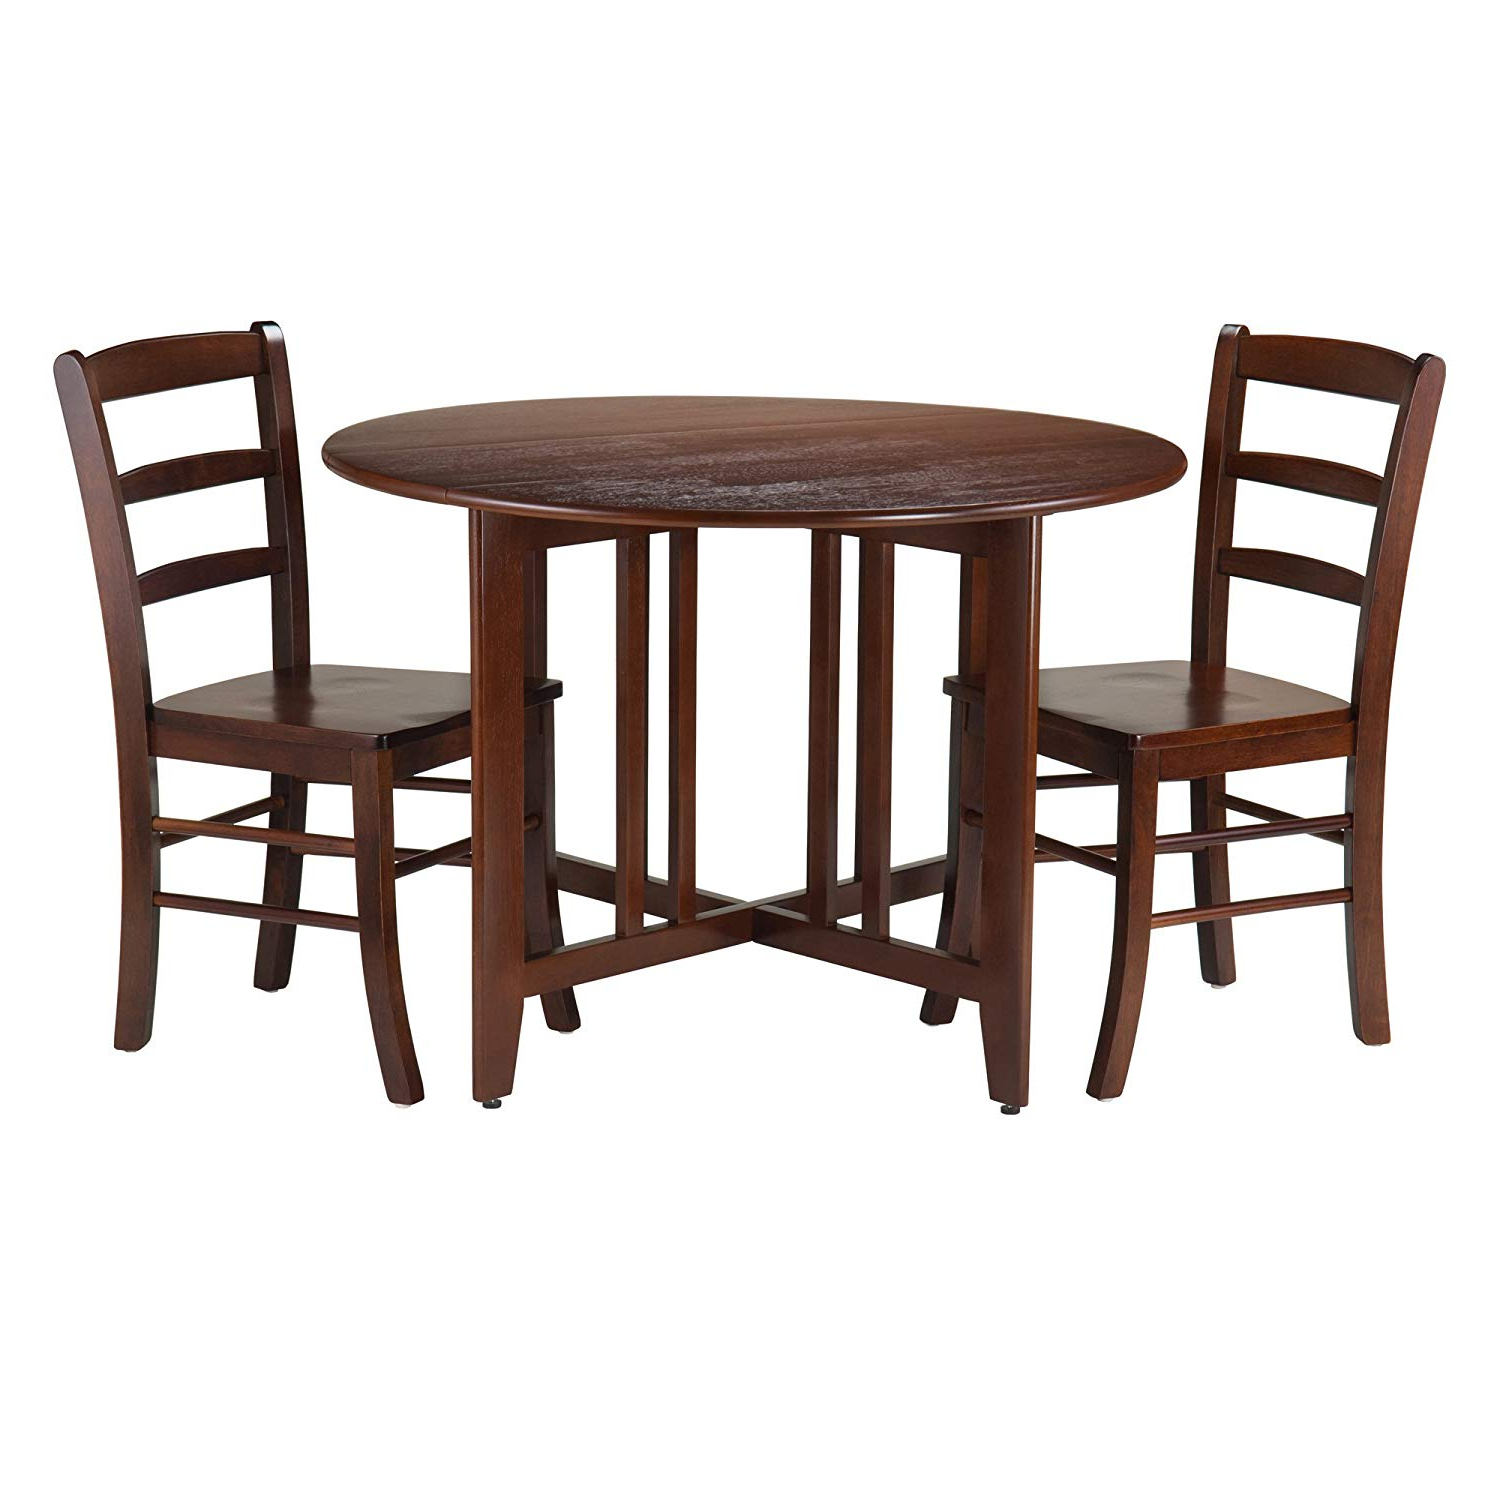 Most Current Winsome 3 Piece Alamo Round Drop Leaf Table With 2 Ladder Back Chairs, Brown With Transitional 4 Seating Drop Leaf Casual Dining Tables (View 10 of 25)